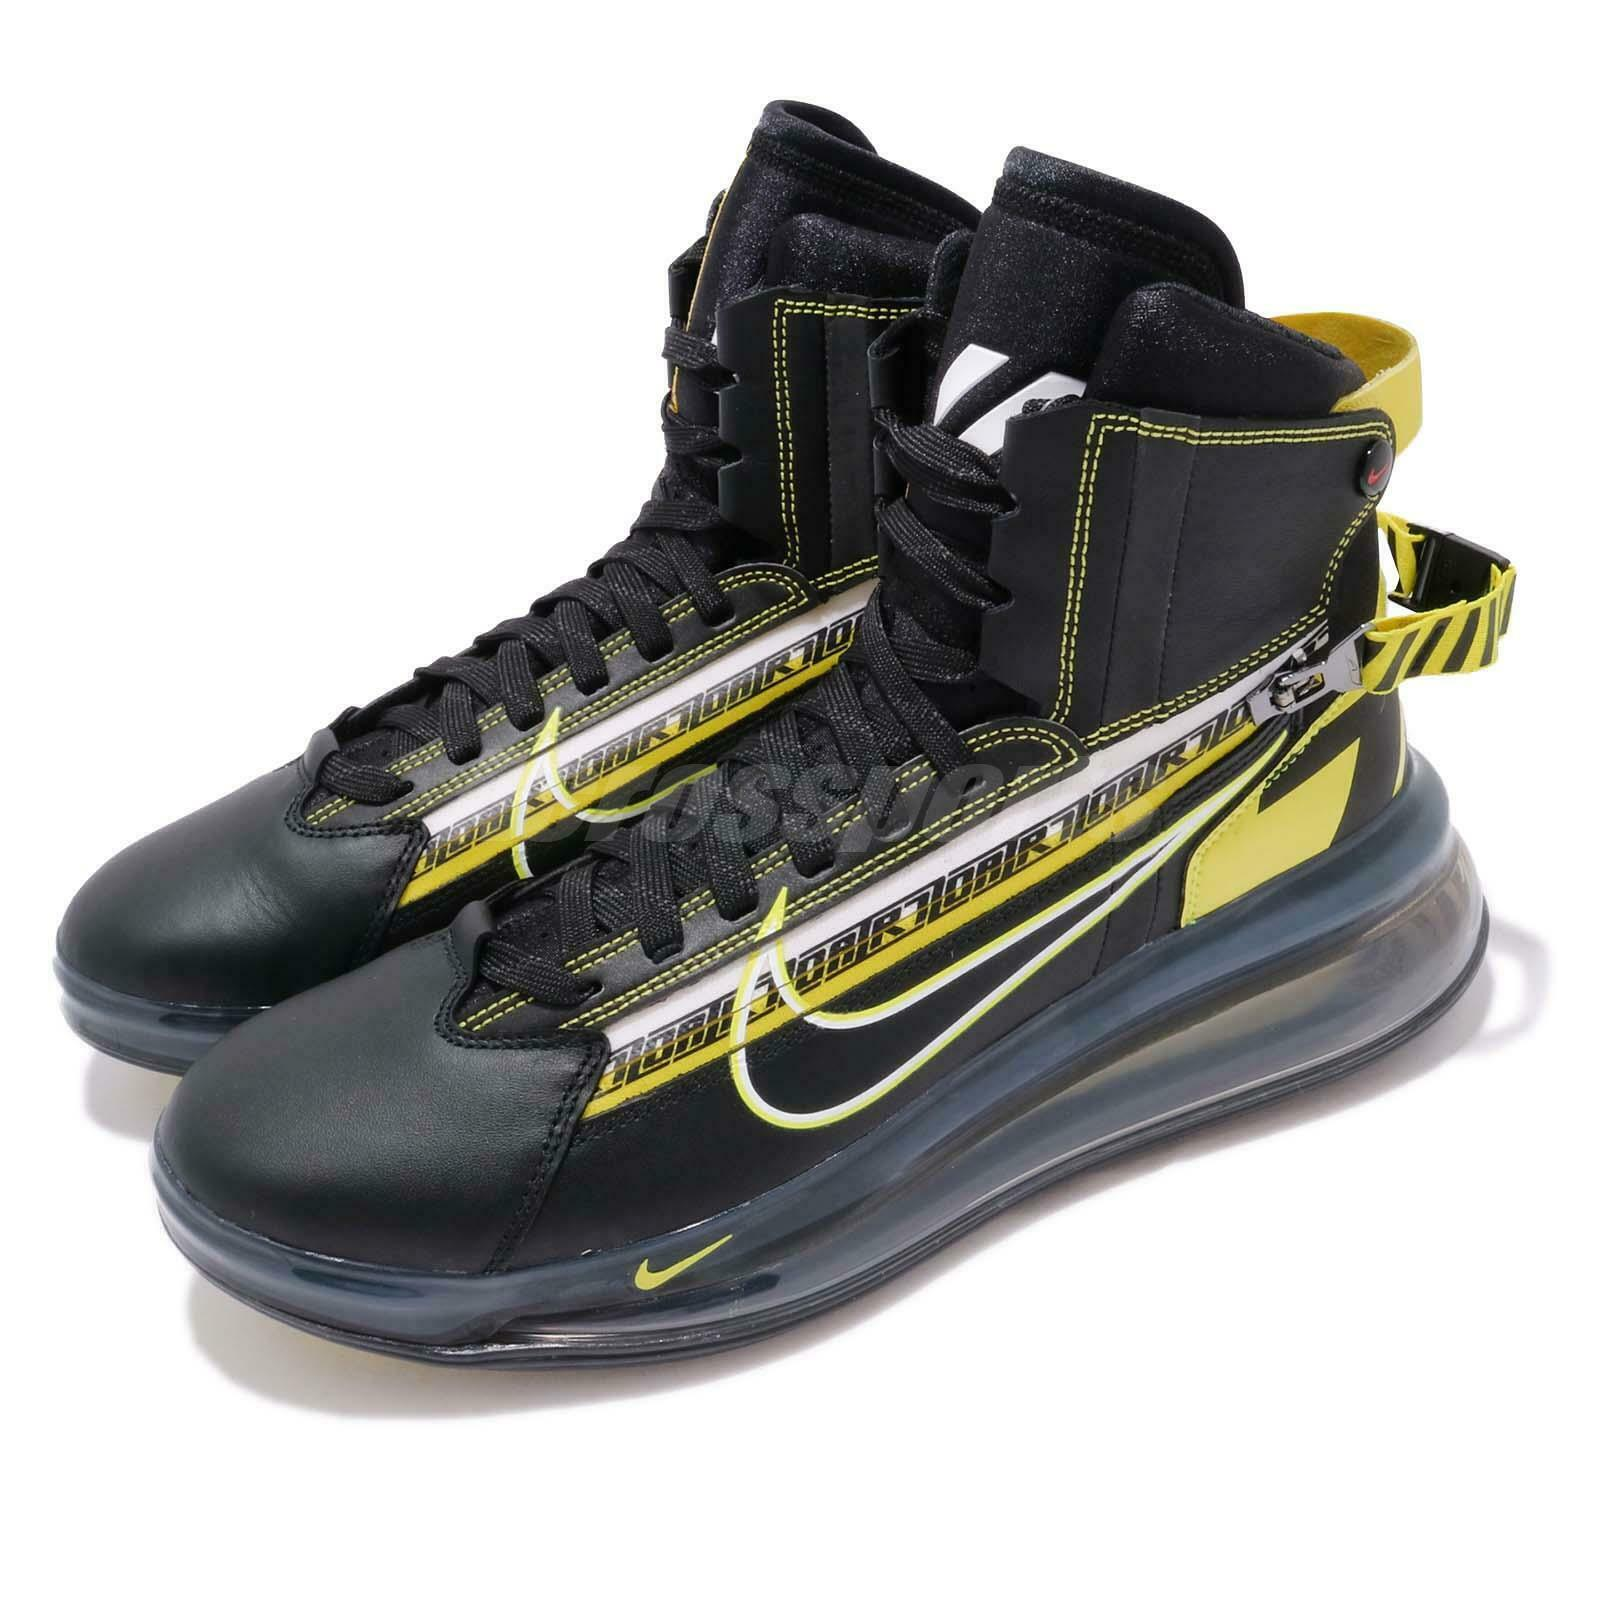 Nike Air Max 720 Saturn AS QS All Star 2019 Motorsport Black Yellow BV7786-001